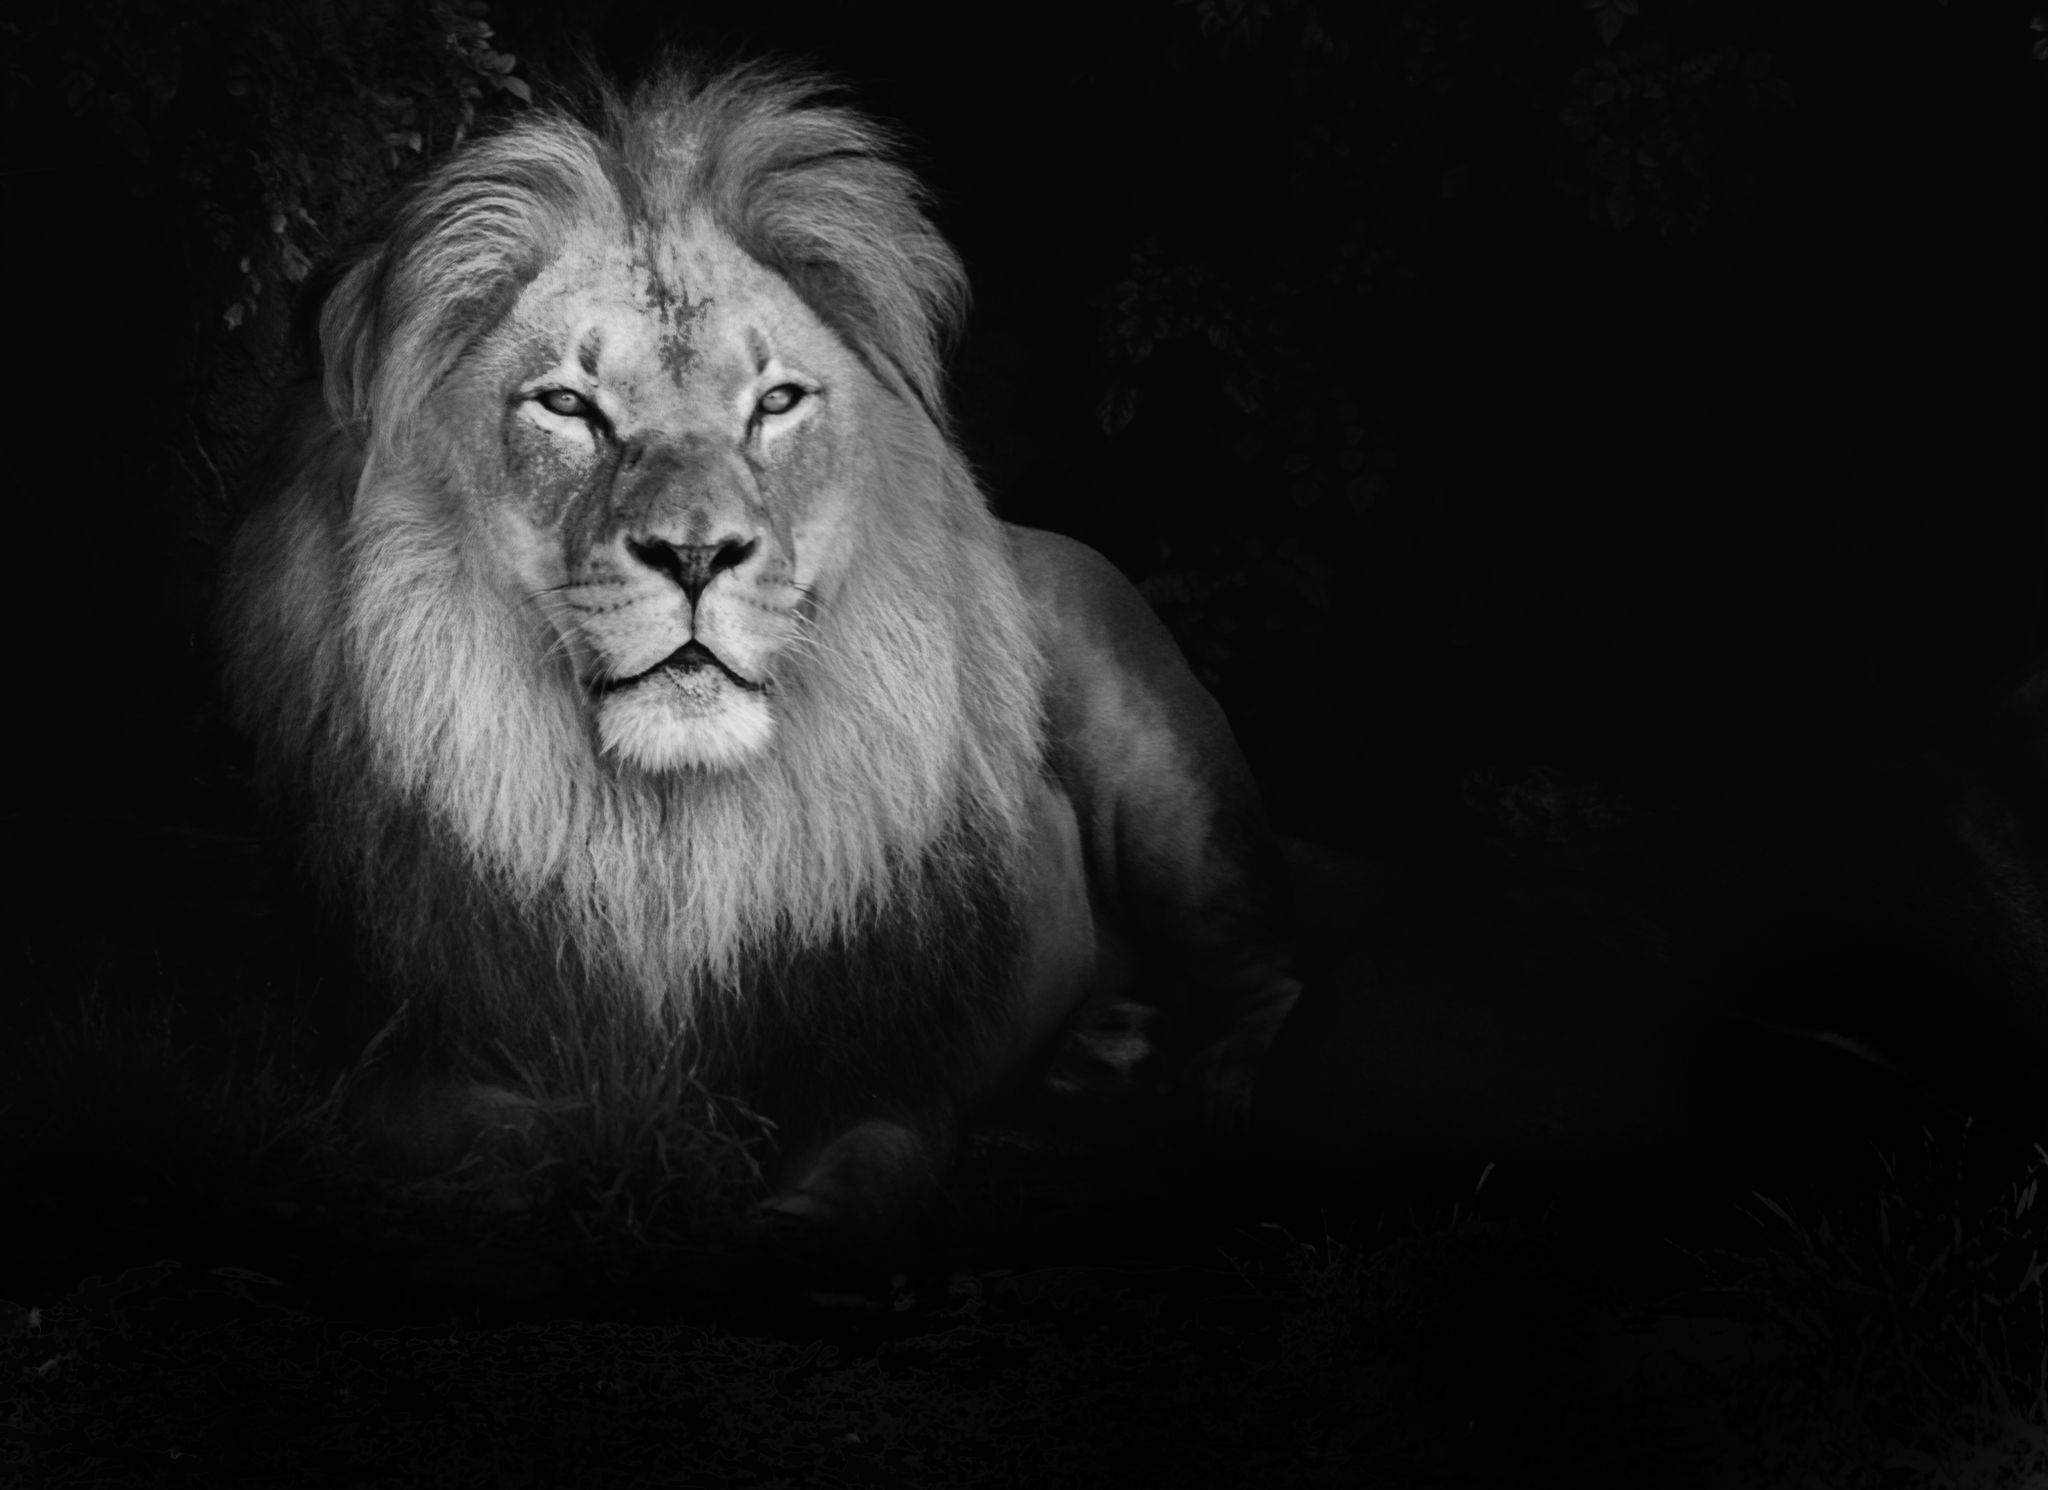 Nature Lion Big Cats Fury Angry Portrait Monochrome